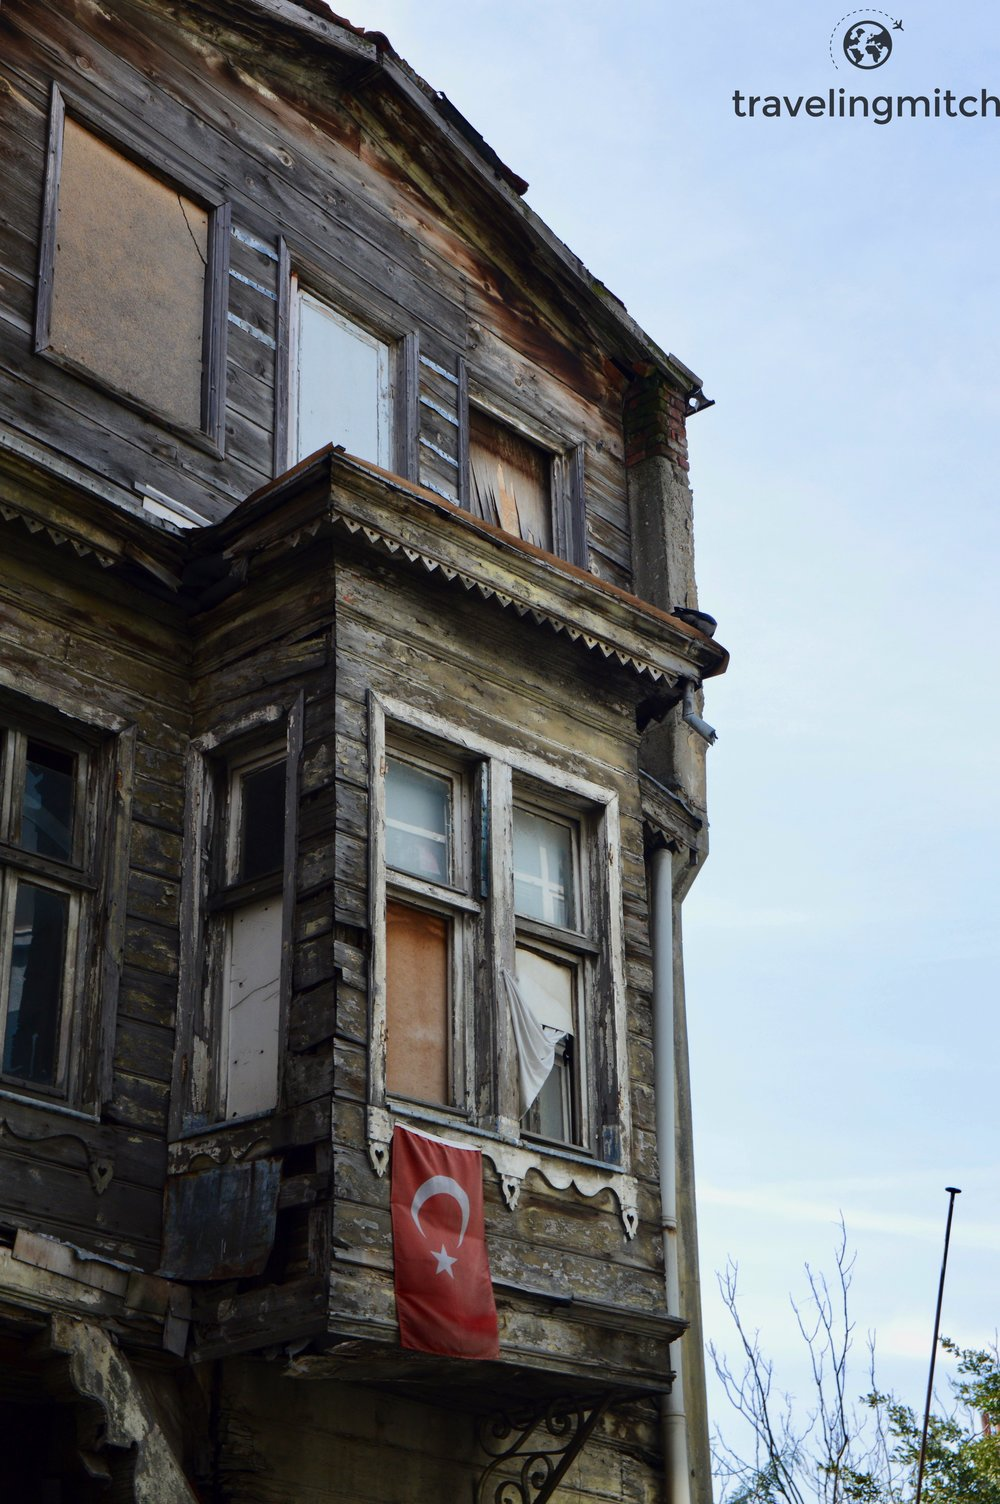 The too often overlooked area of Göztepe in Istanbul, Turkey